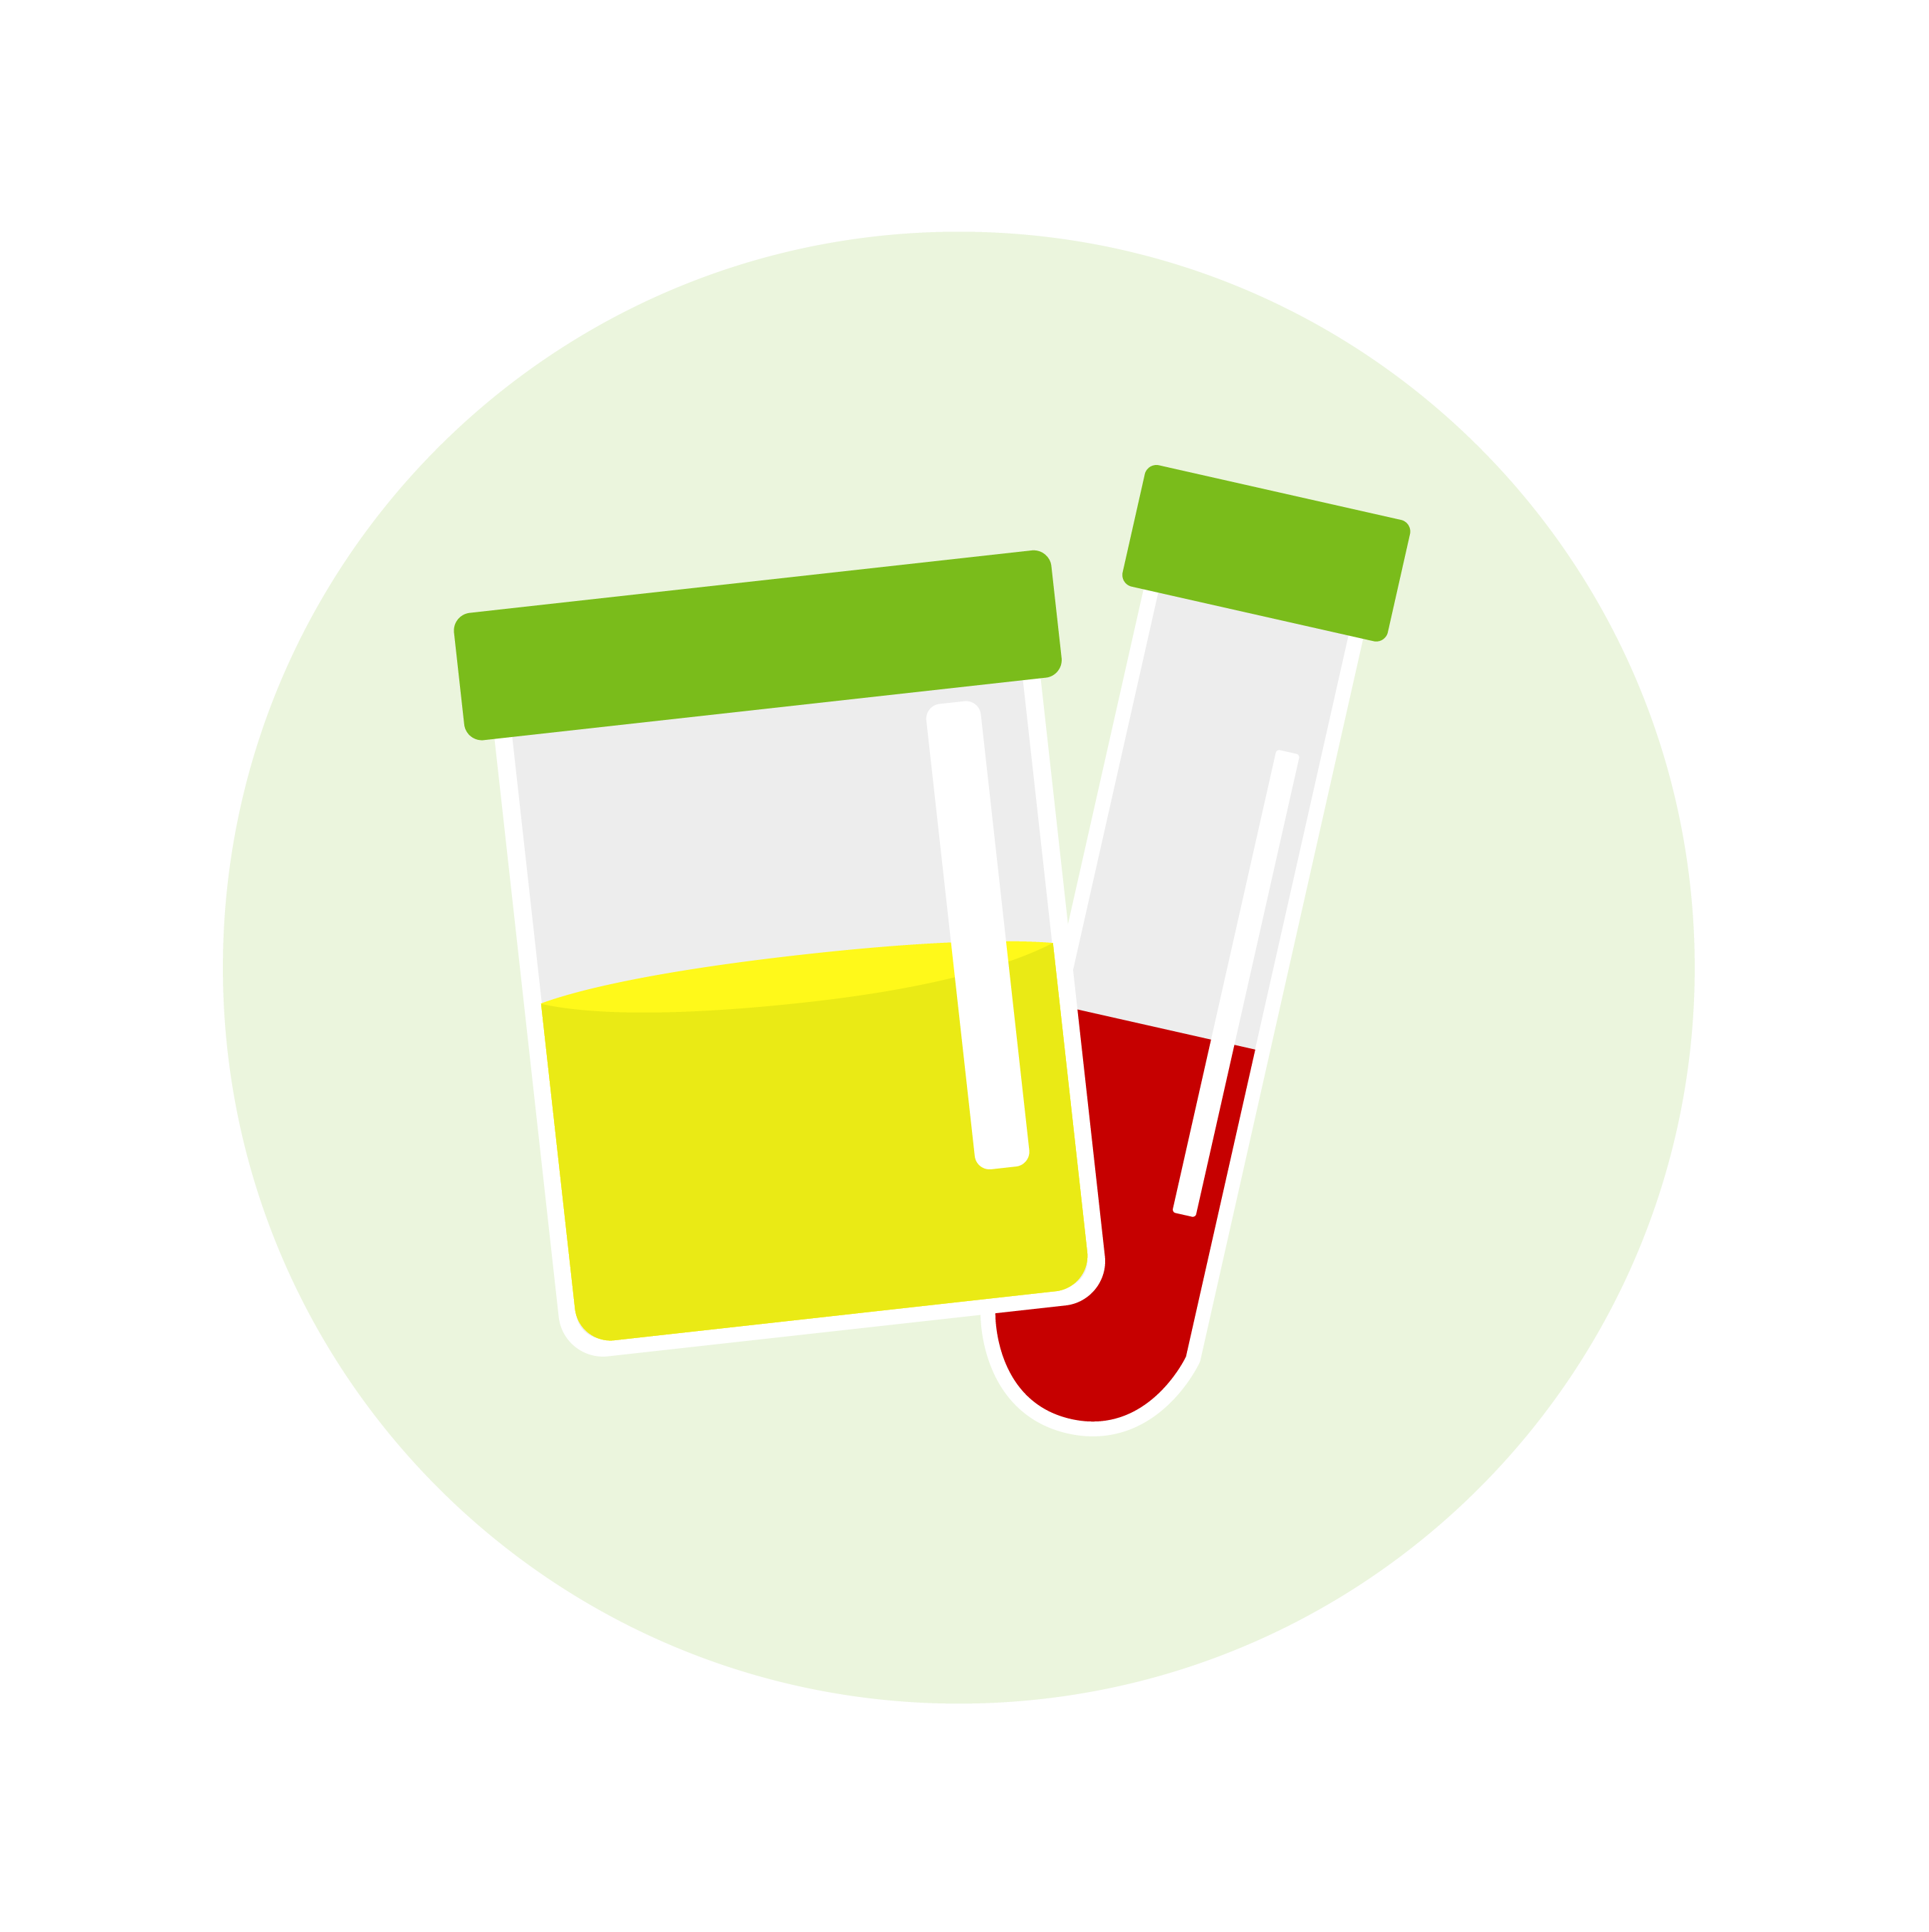 urine container and test tube with blood